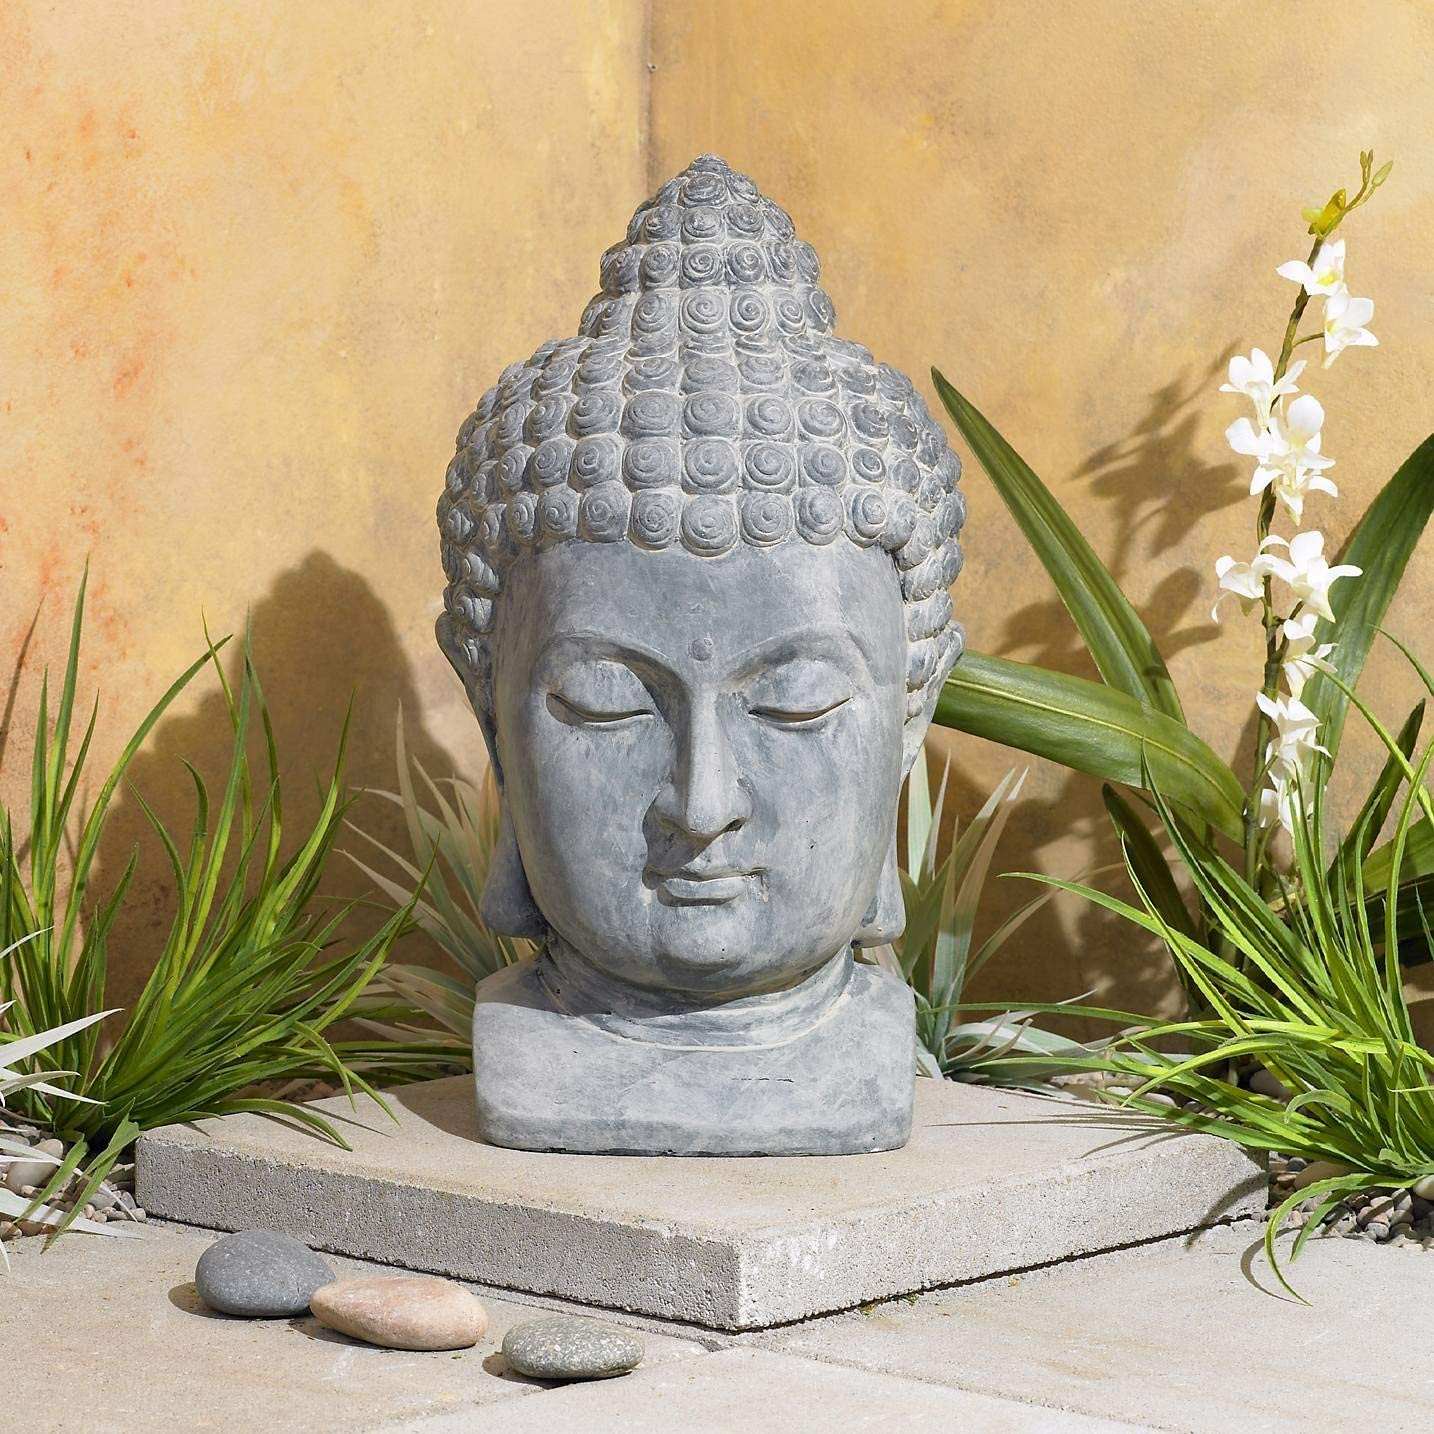 Universal Lighting and Decor Meditating Buddha Head Asian Zen Outdoor Statue 18 1/2″ High Bust Sculpture